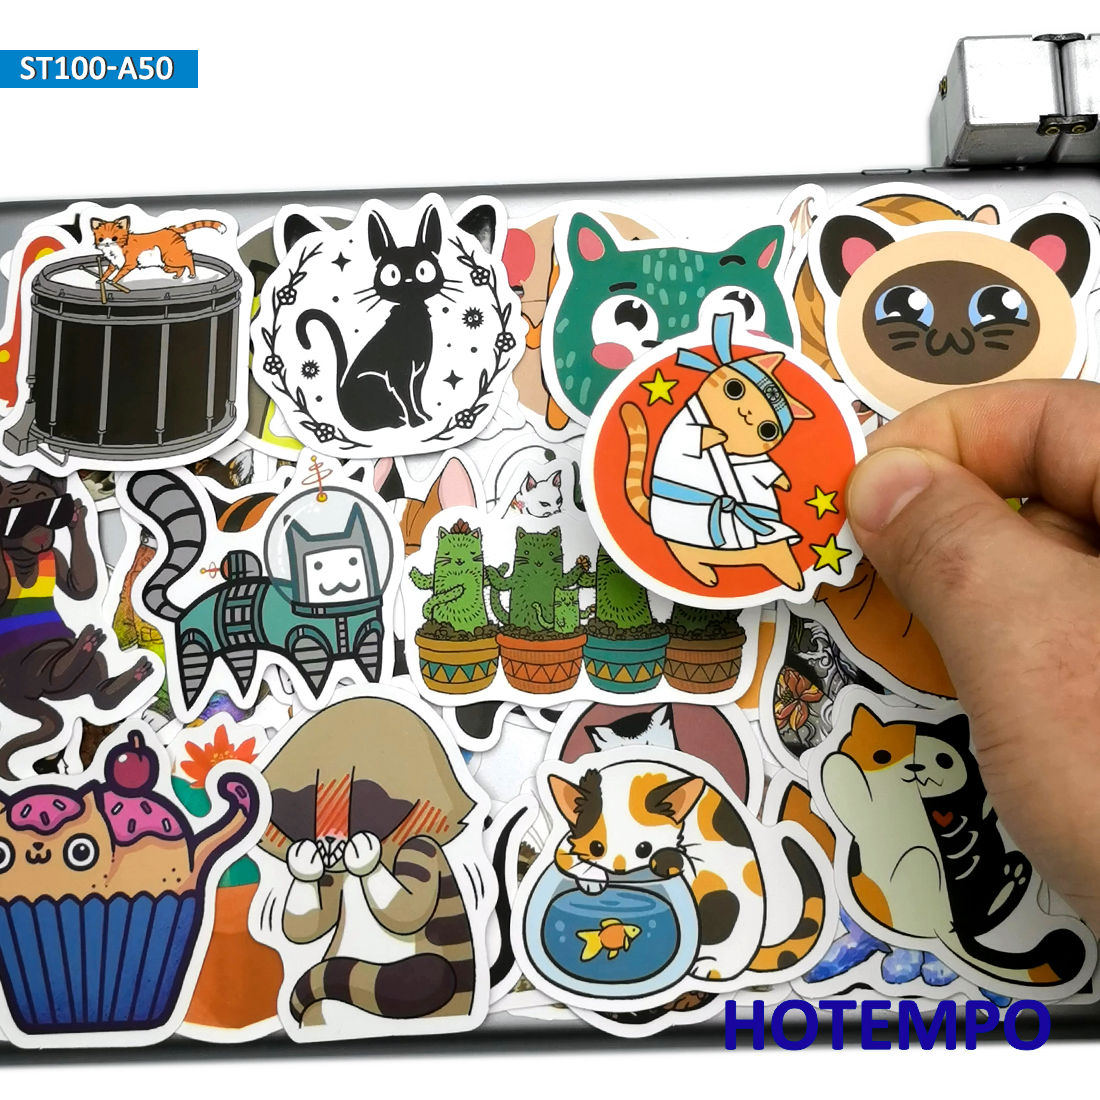 50pcs Cute Cats Pets Anime Style Stickers Toys For Children Kids Scrapbook Stationery Mobile Phone Laptop Cartoon Decal Stickers